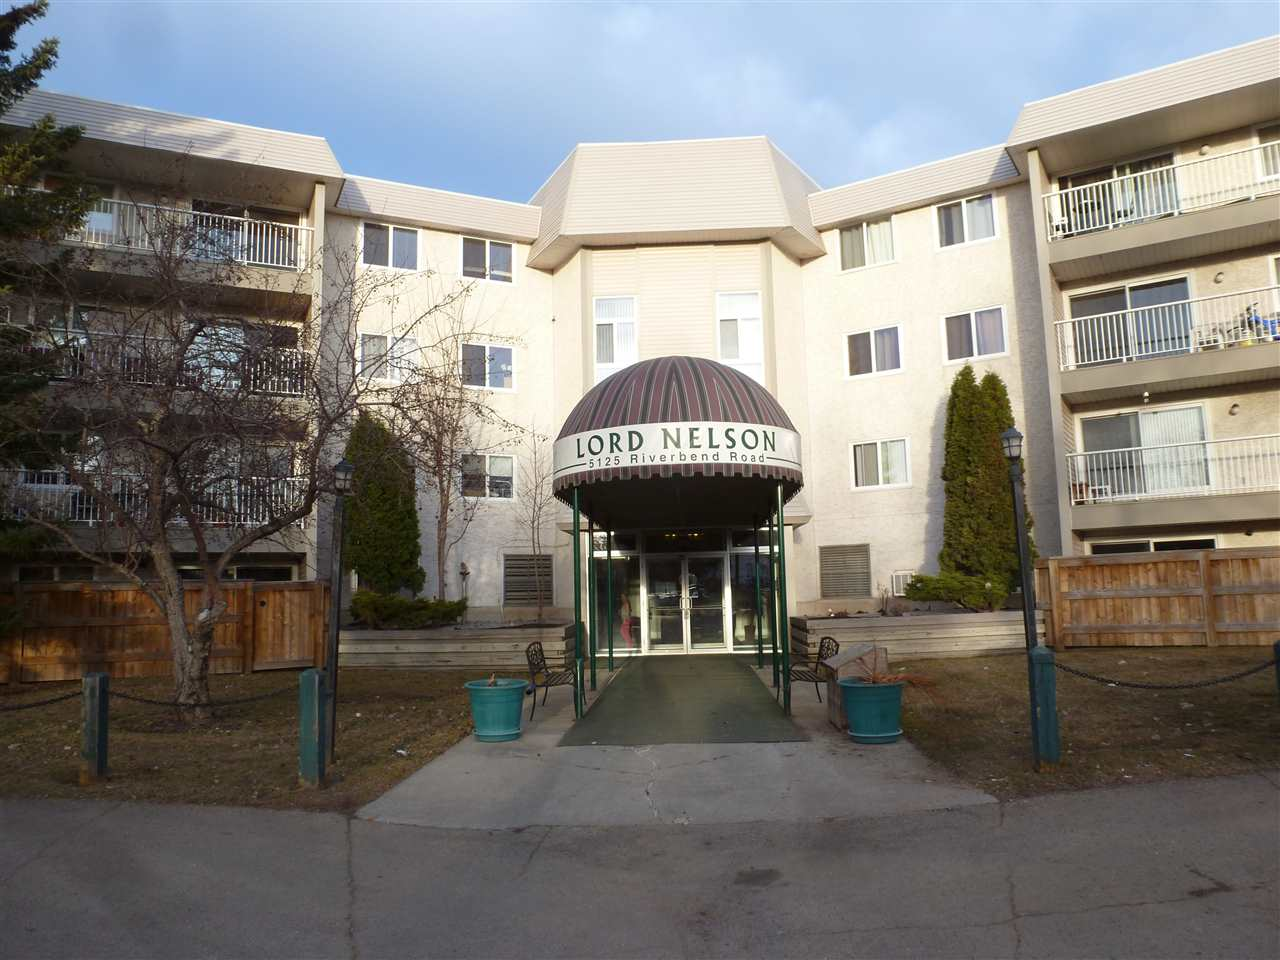 Whether you be INVESTOR or HOME BUYER, this is an **INCREDIBLE VALUE @ $174,900** for this very spacious ** 3-Bedroom/2 Bathroom** Condo(1150 Sq Ft) on the 3rd Floor at the Lord Nelson in Riverbend/Brandner Gardens. Features newer laminate flooring, windows and  upgraded blinds, galley kitchen, Balcony. Massive and marvellous black wall unit in Living Room will stay. Comes with 2 Outside Parking Stalls(1 under cover). The Lord Nelson also features an Indoor Swimming Pool and HotTub off the main floor. Nice Social/Party Room on the 2nd Floor. Guest Suite and Visitor Parking is also available. Great location too - close to schools and with quick access to the Whitemud Freeway. **Very Quick Possession Available!**